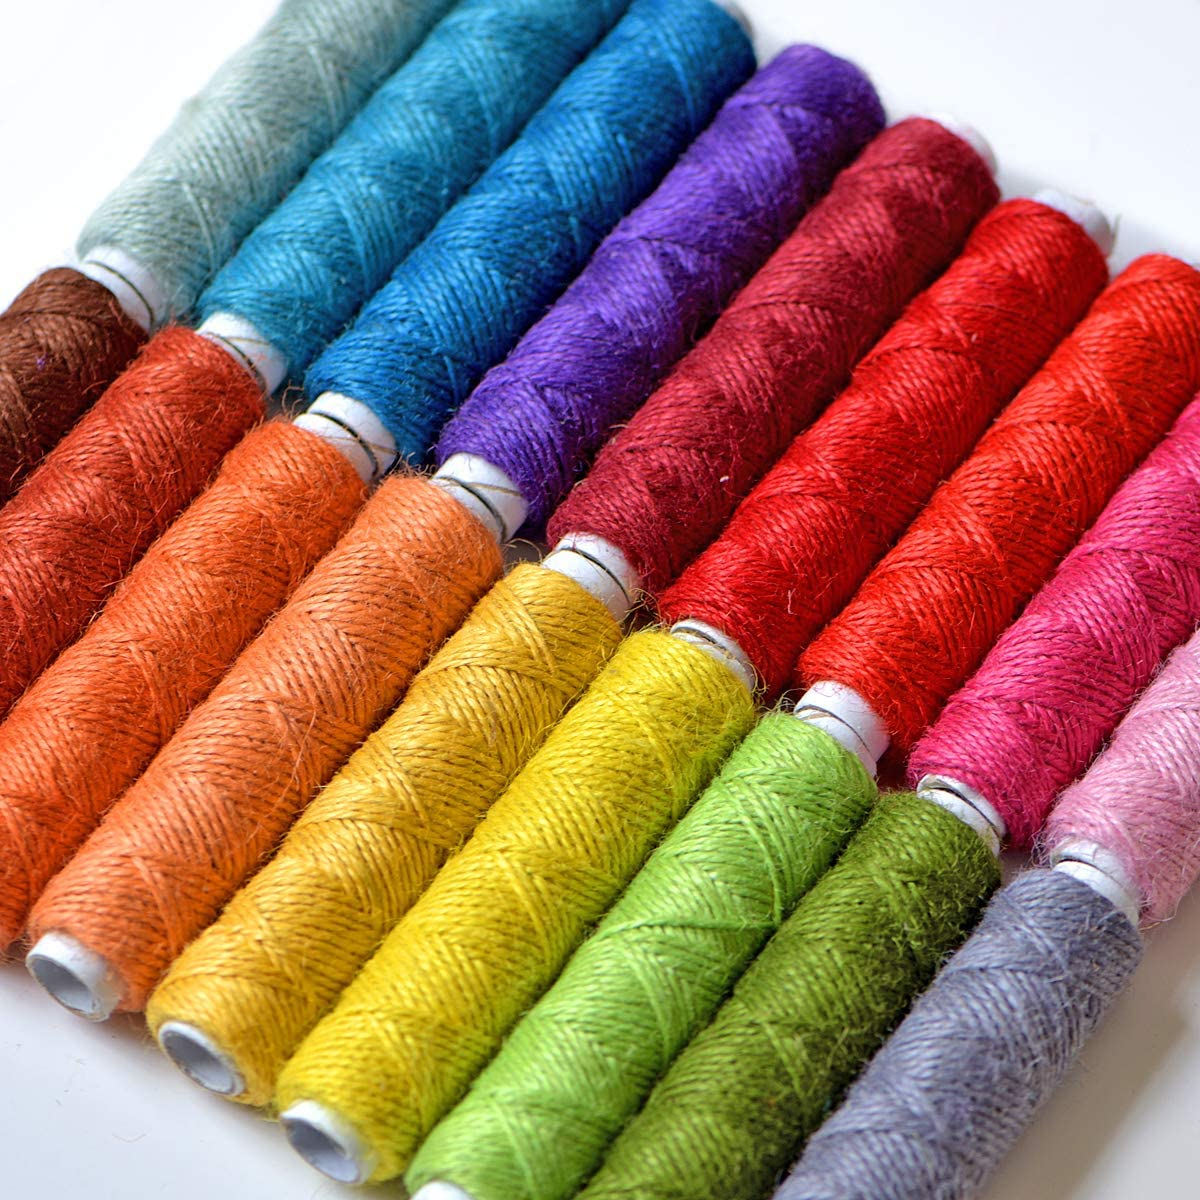 535 Yards Jute Twine- Thick Jute String Rope-Natural Garden Twine-2mm Jute Twine String Hemp Rolls 18 Colors,1605 Feet Gifts DIY Crafts Each for Gardening Decoration Bundling